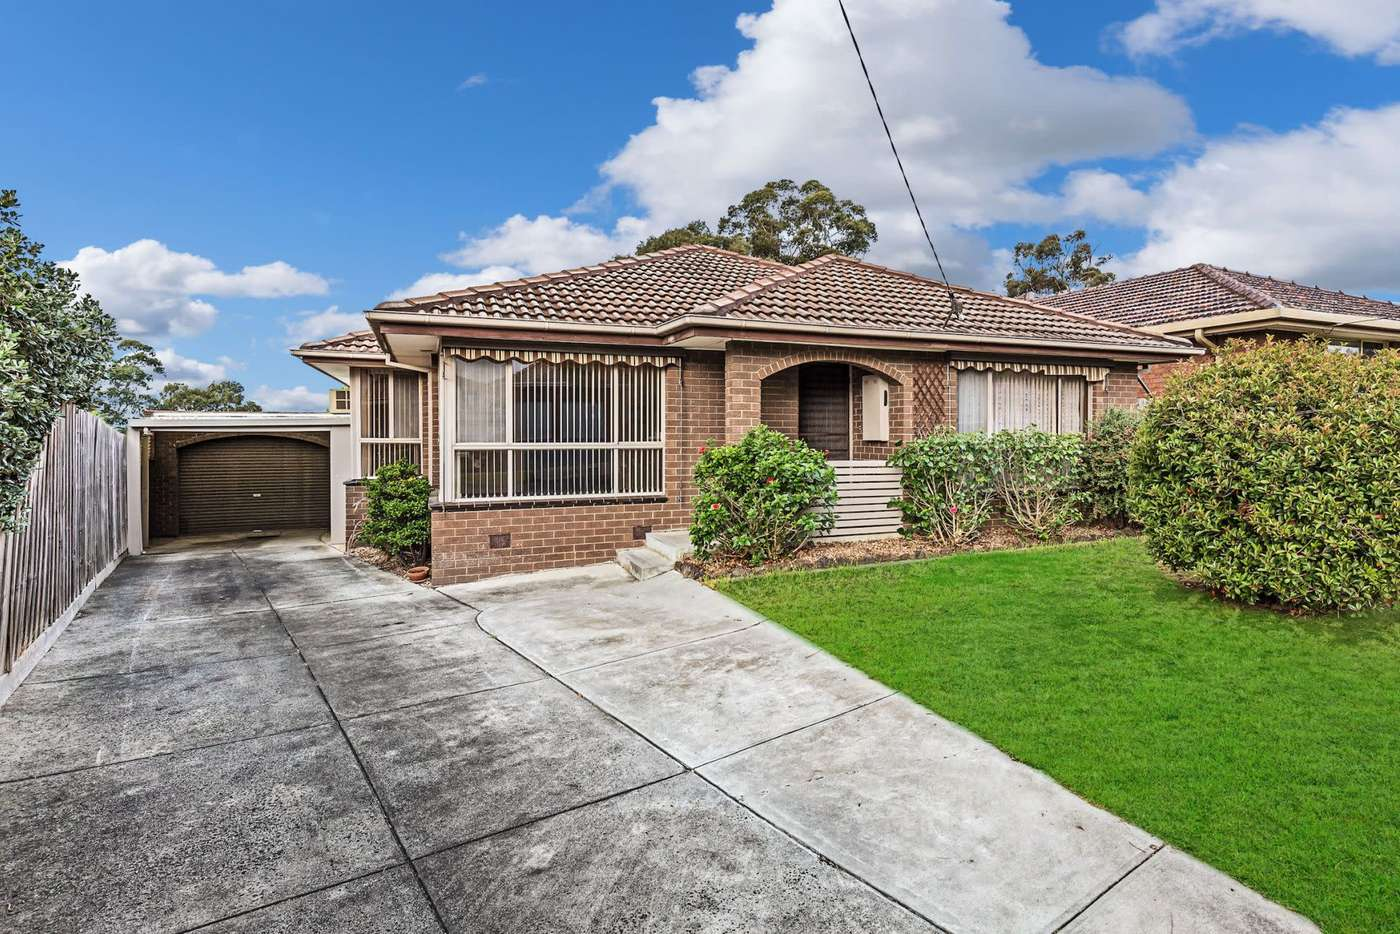 Main view of Homely house listing, 27 Janet Crescent, Bundoora VIC 3083